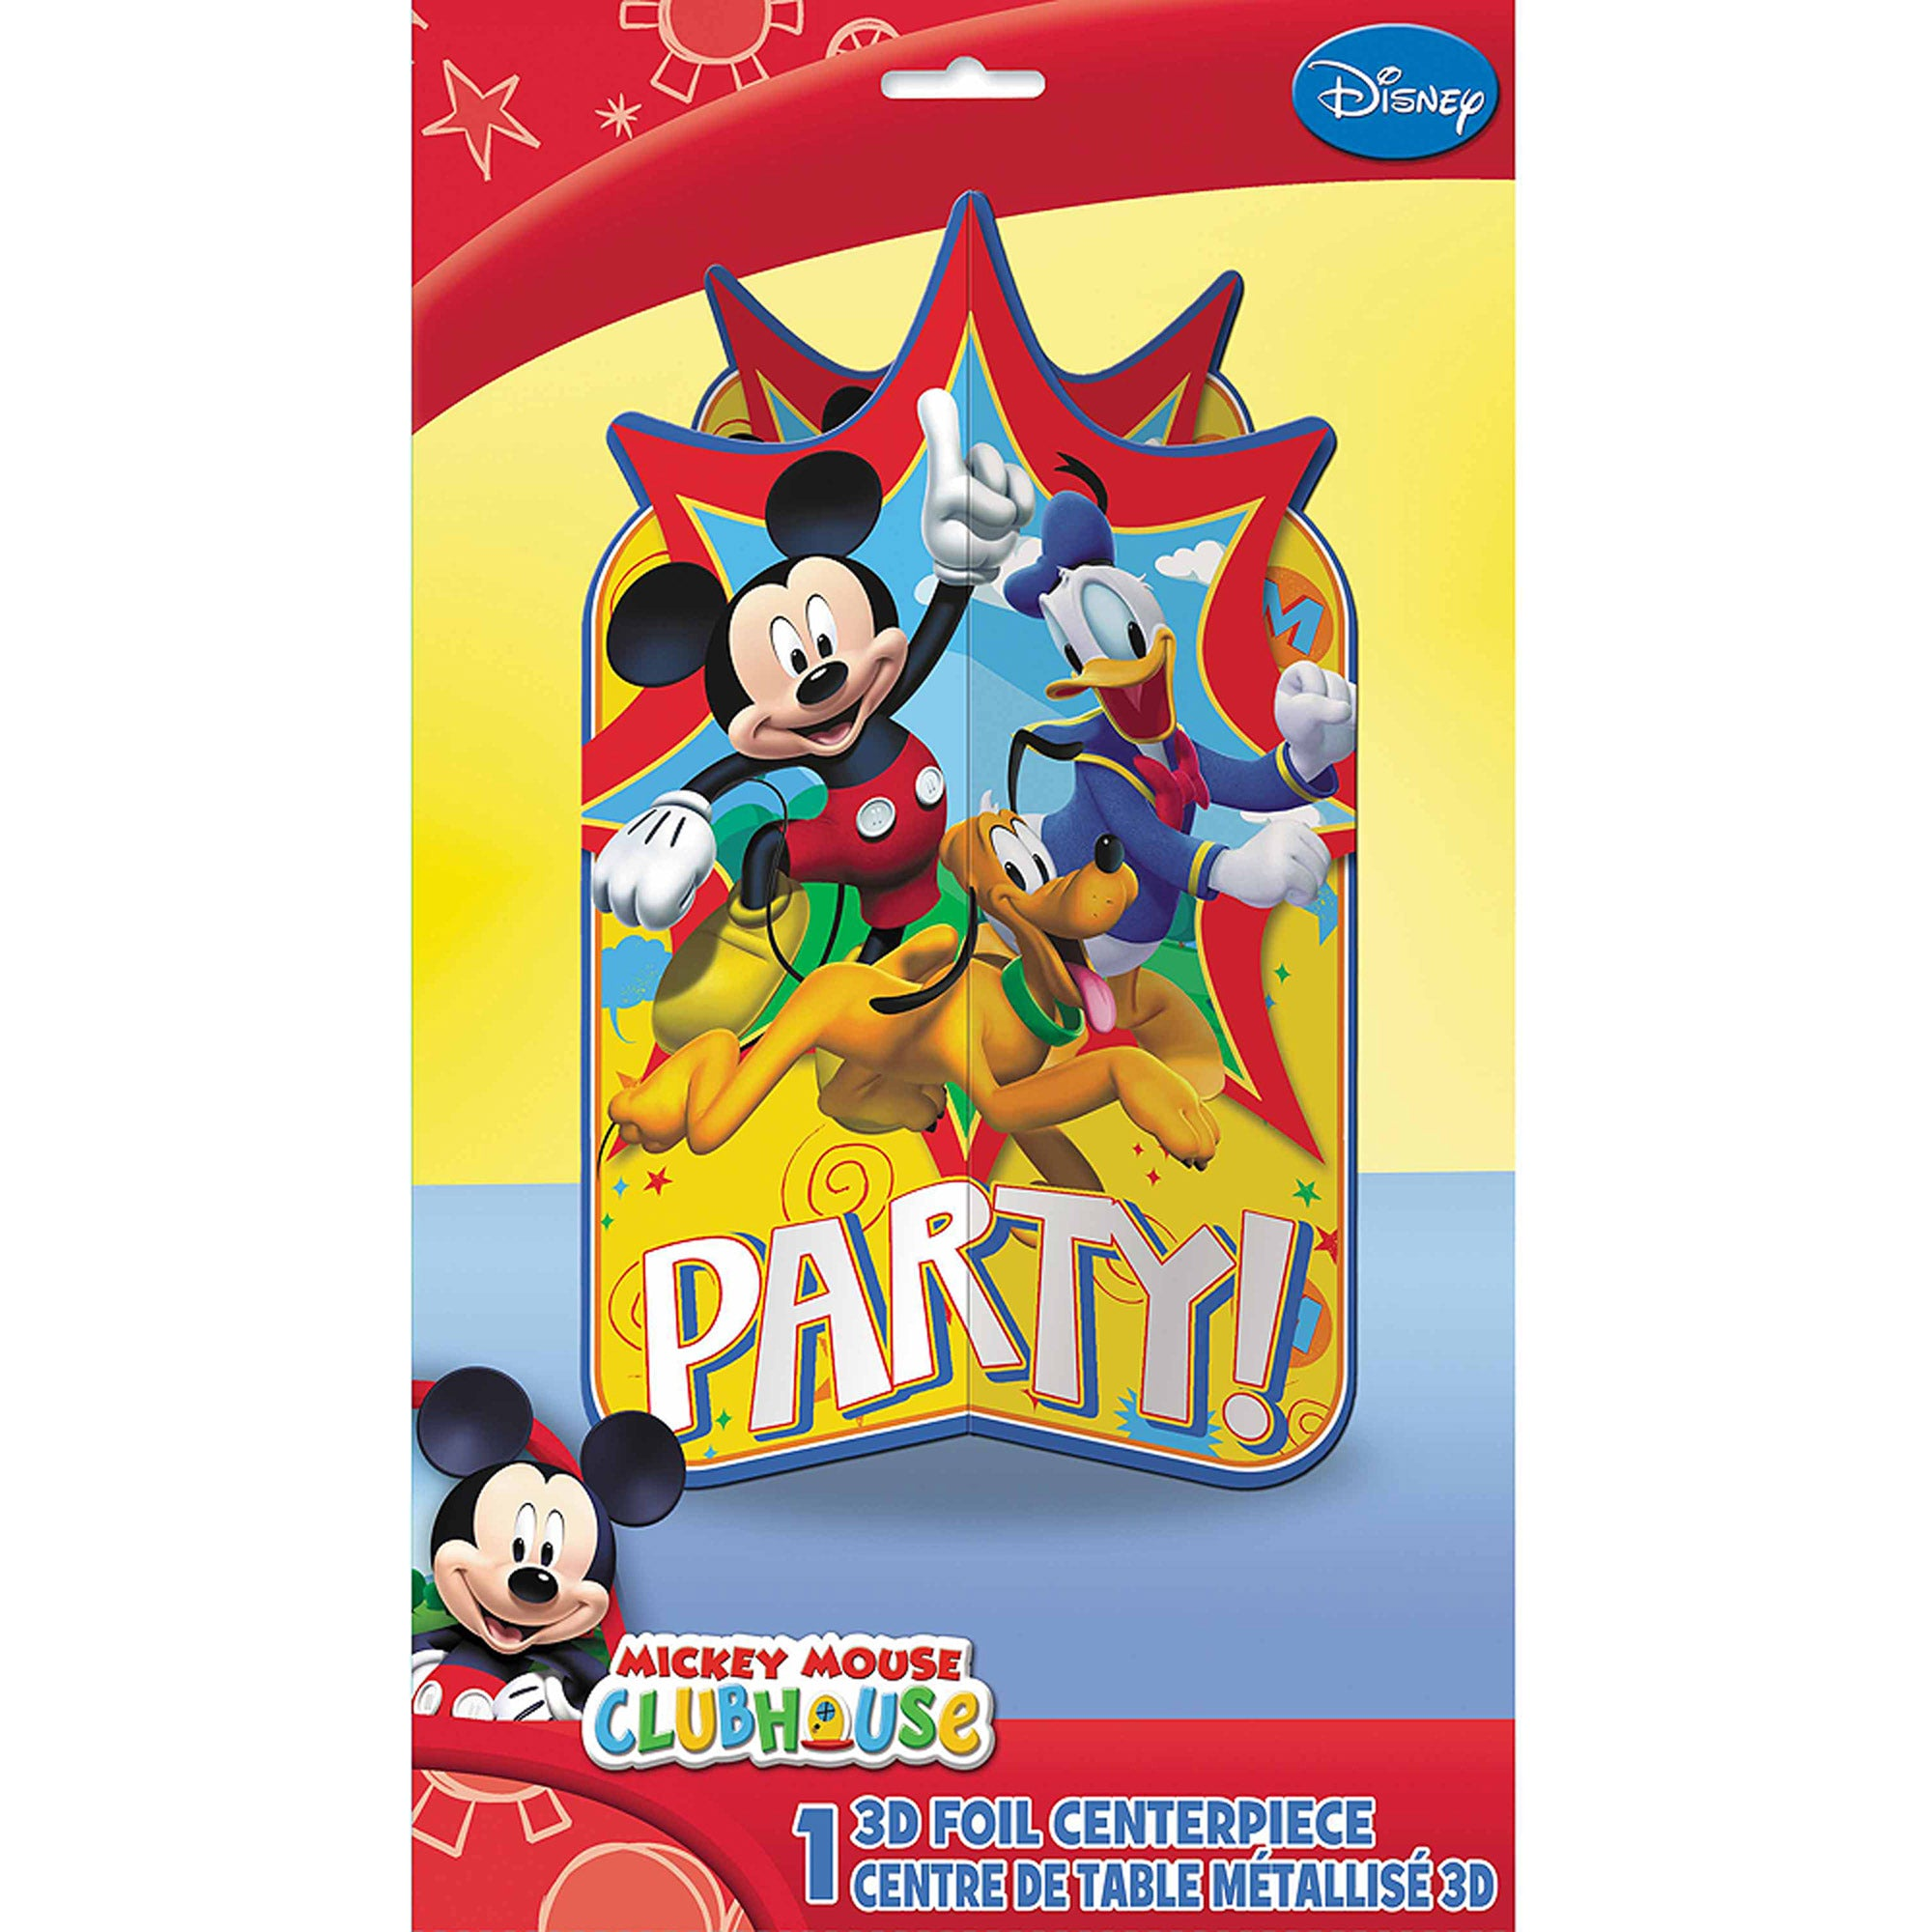 Mickey Mouse Clubhouse 3D Foil Centerpiece - Party Savers